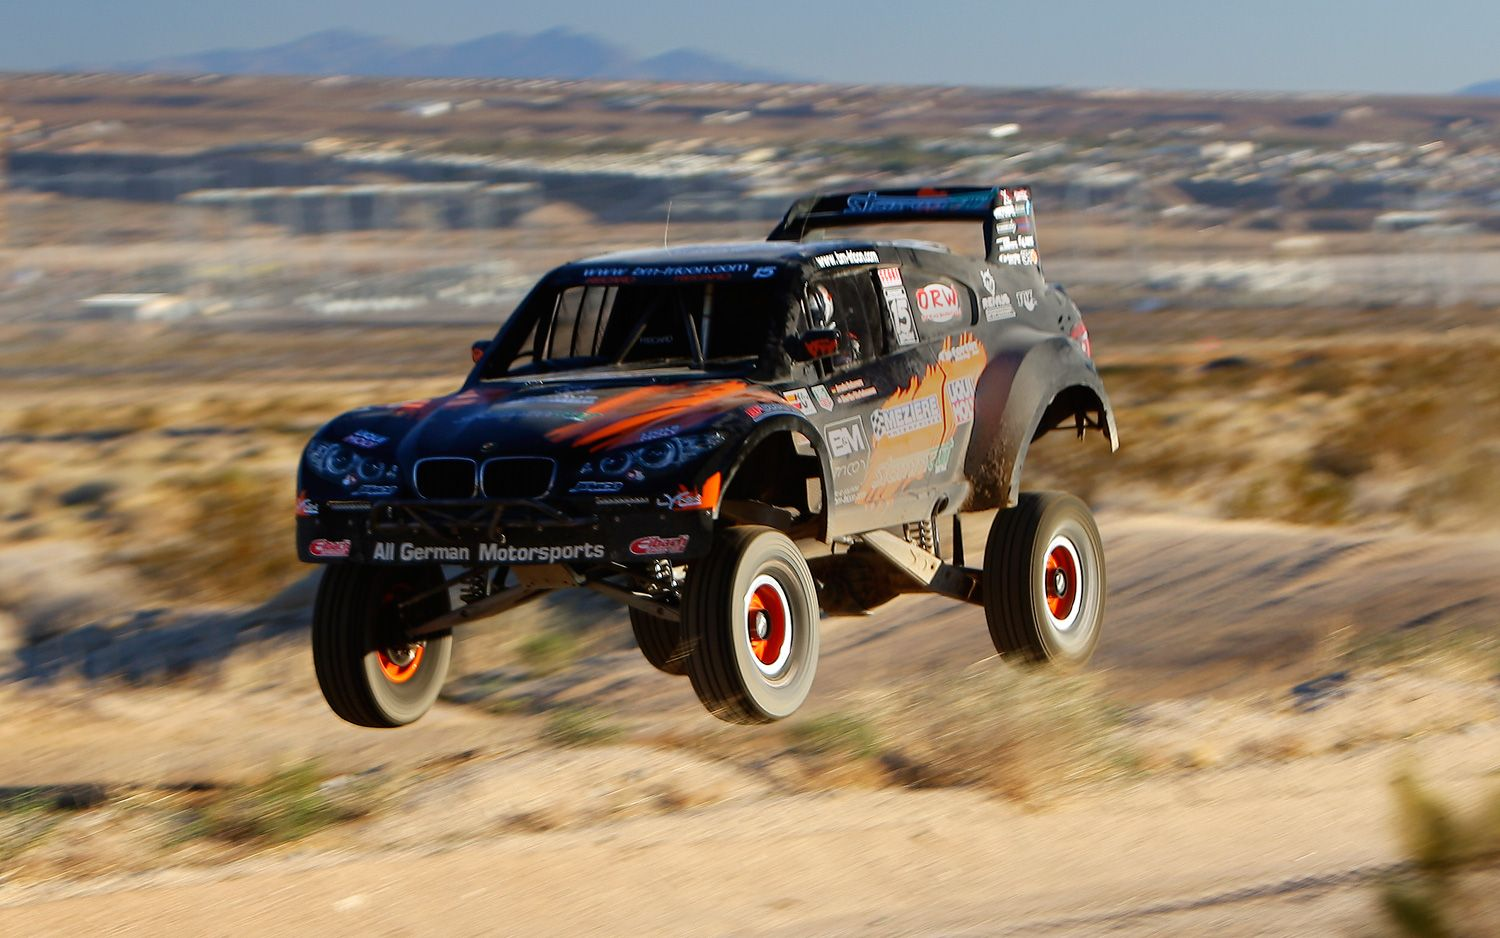 2012 Bmw X6 Trophy Truck By All German Motorsports Review